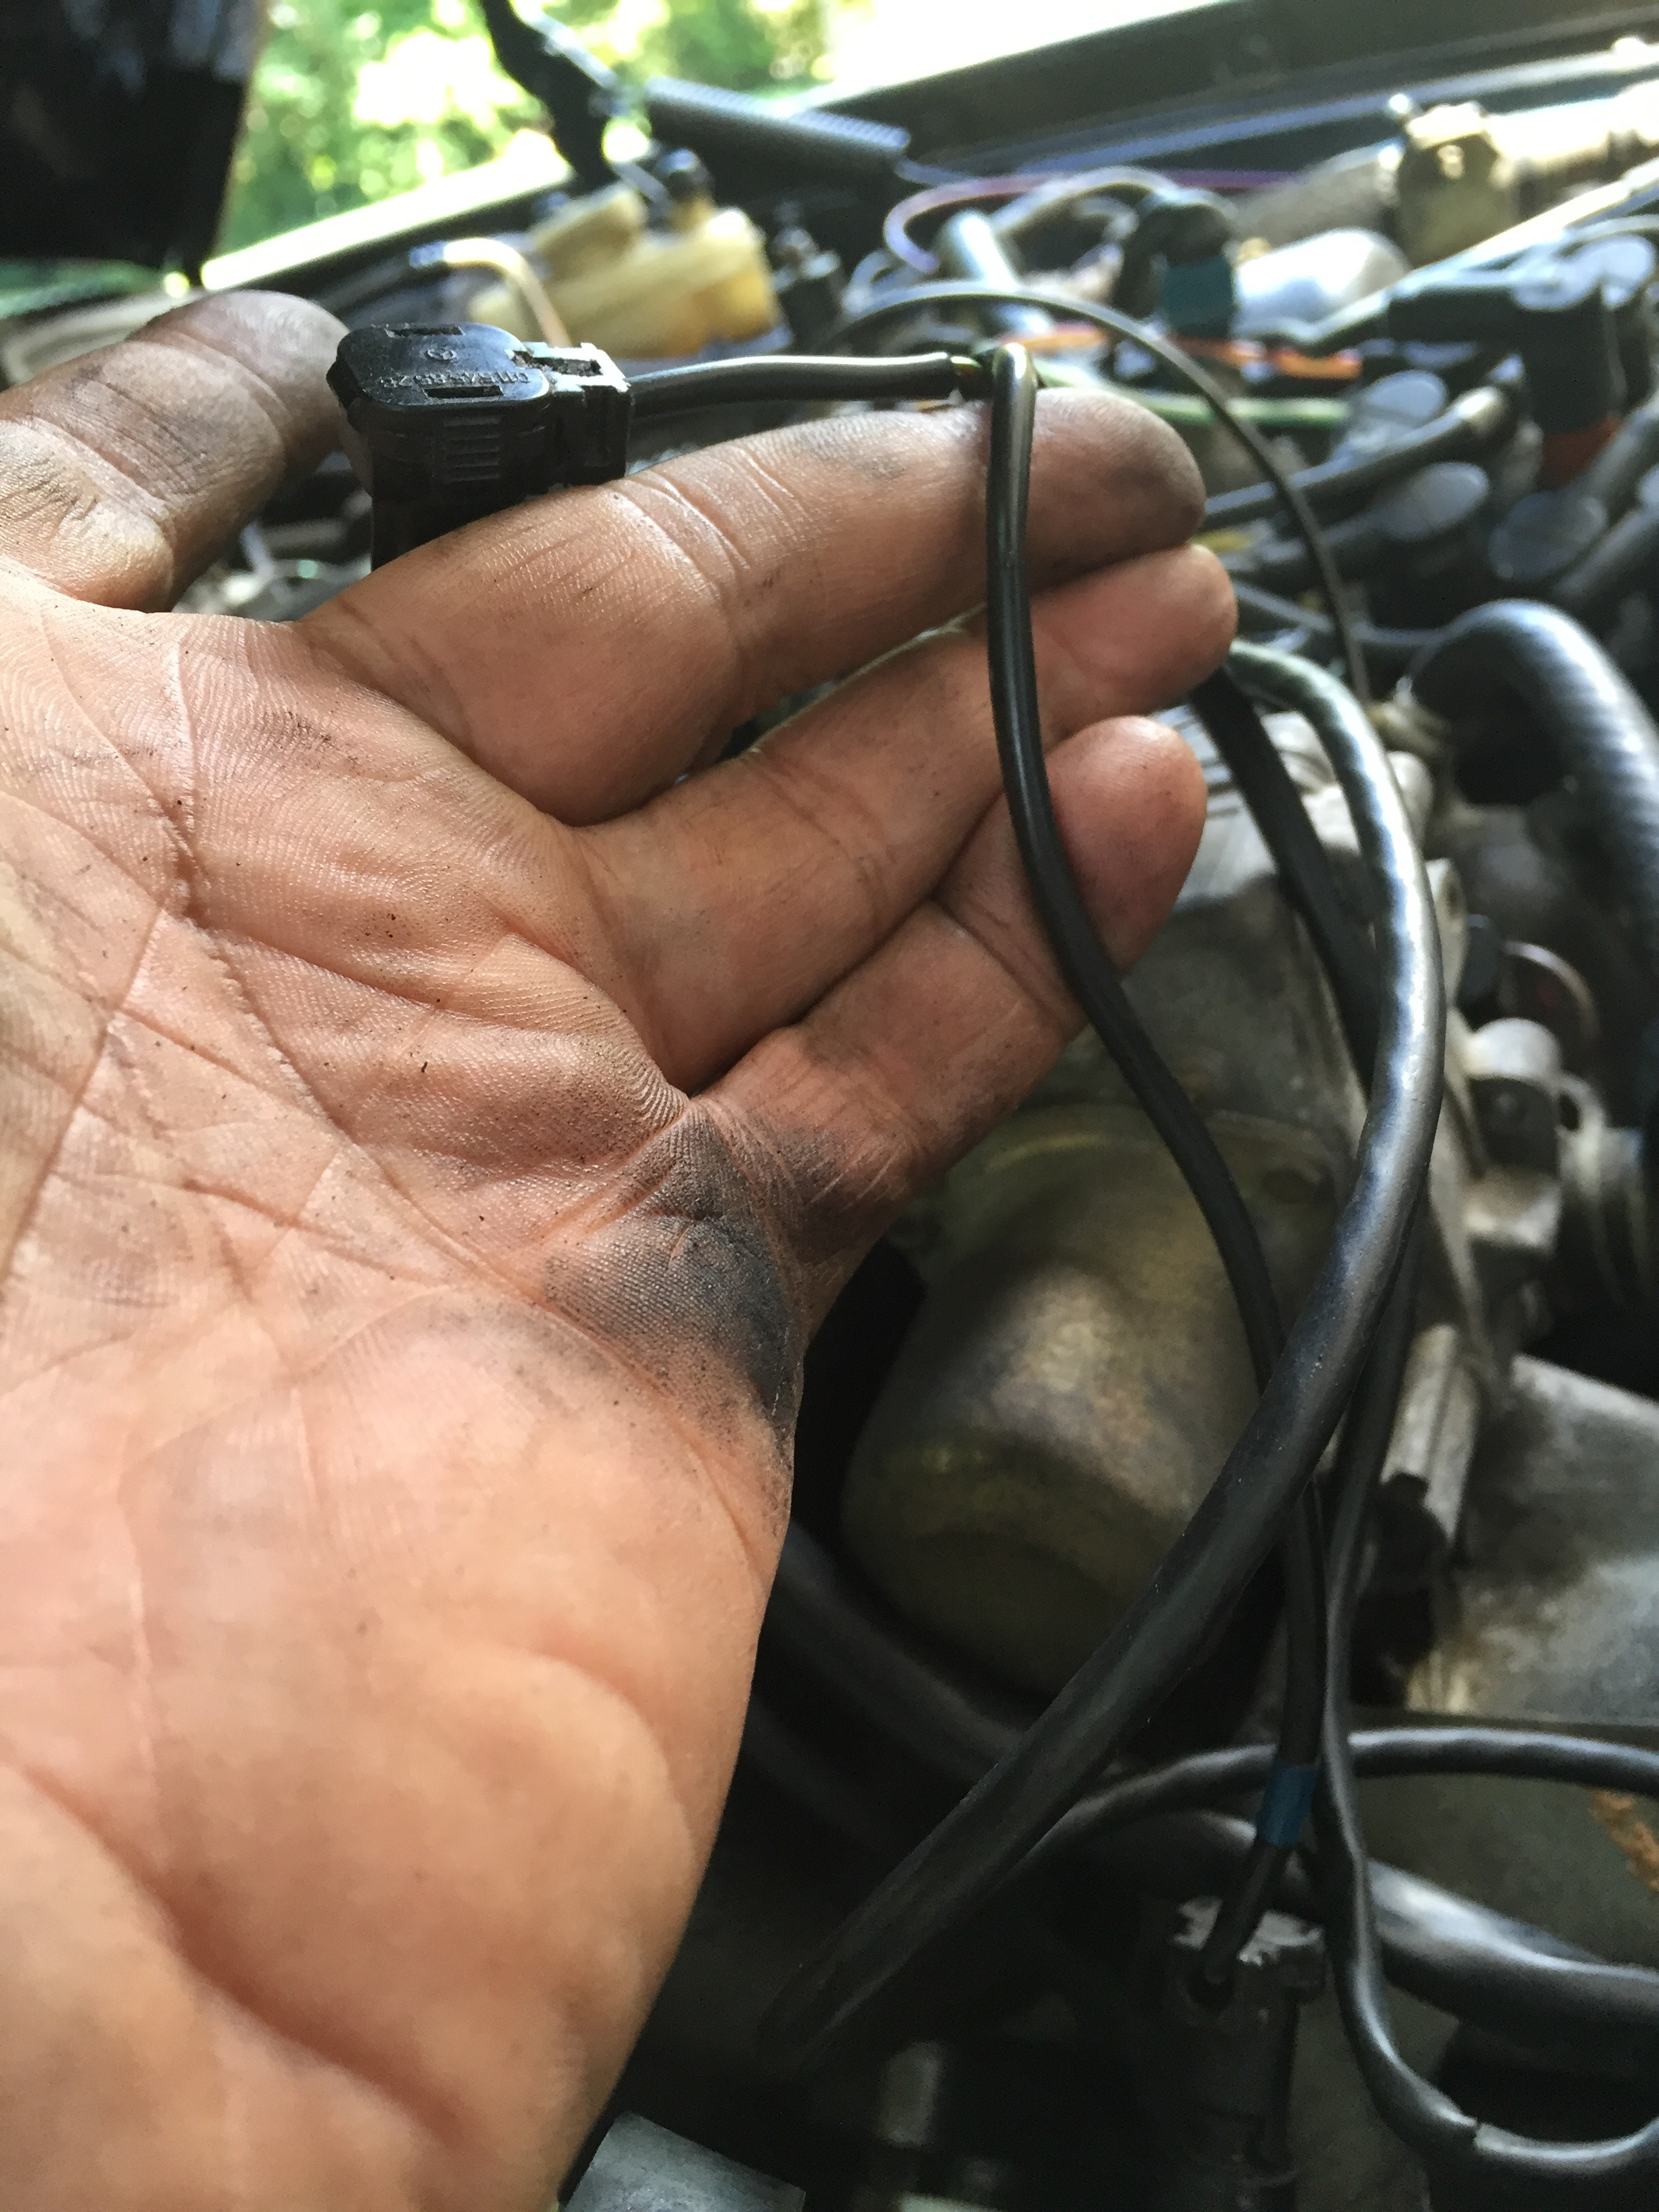 I Purchased A 1983 380sl That Has Been Sitting For 4 Years And Am Fuel Filter Img 4638img 4638 4639